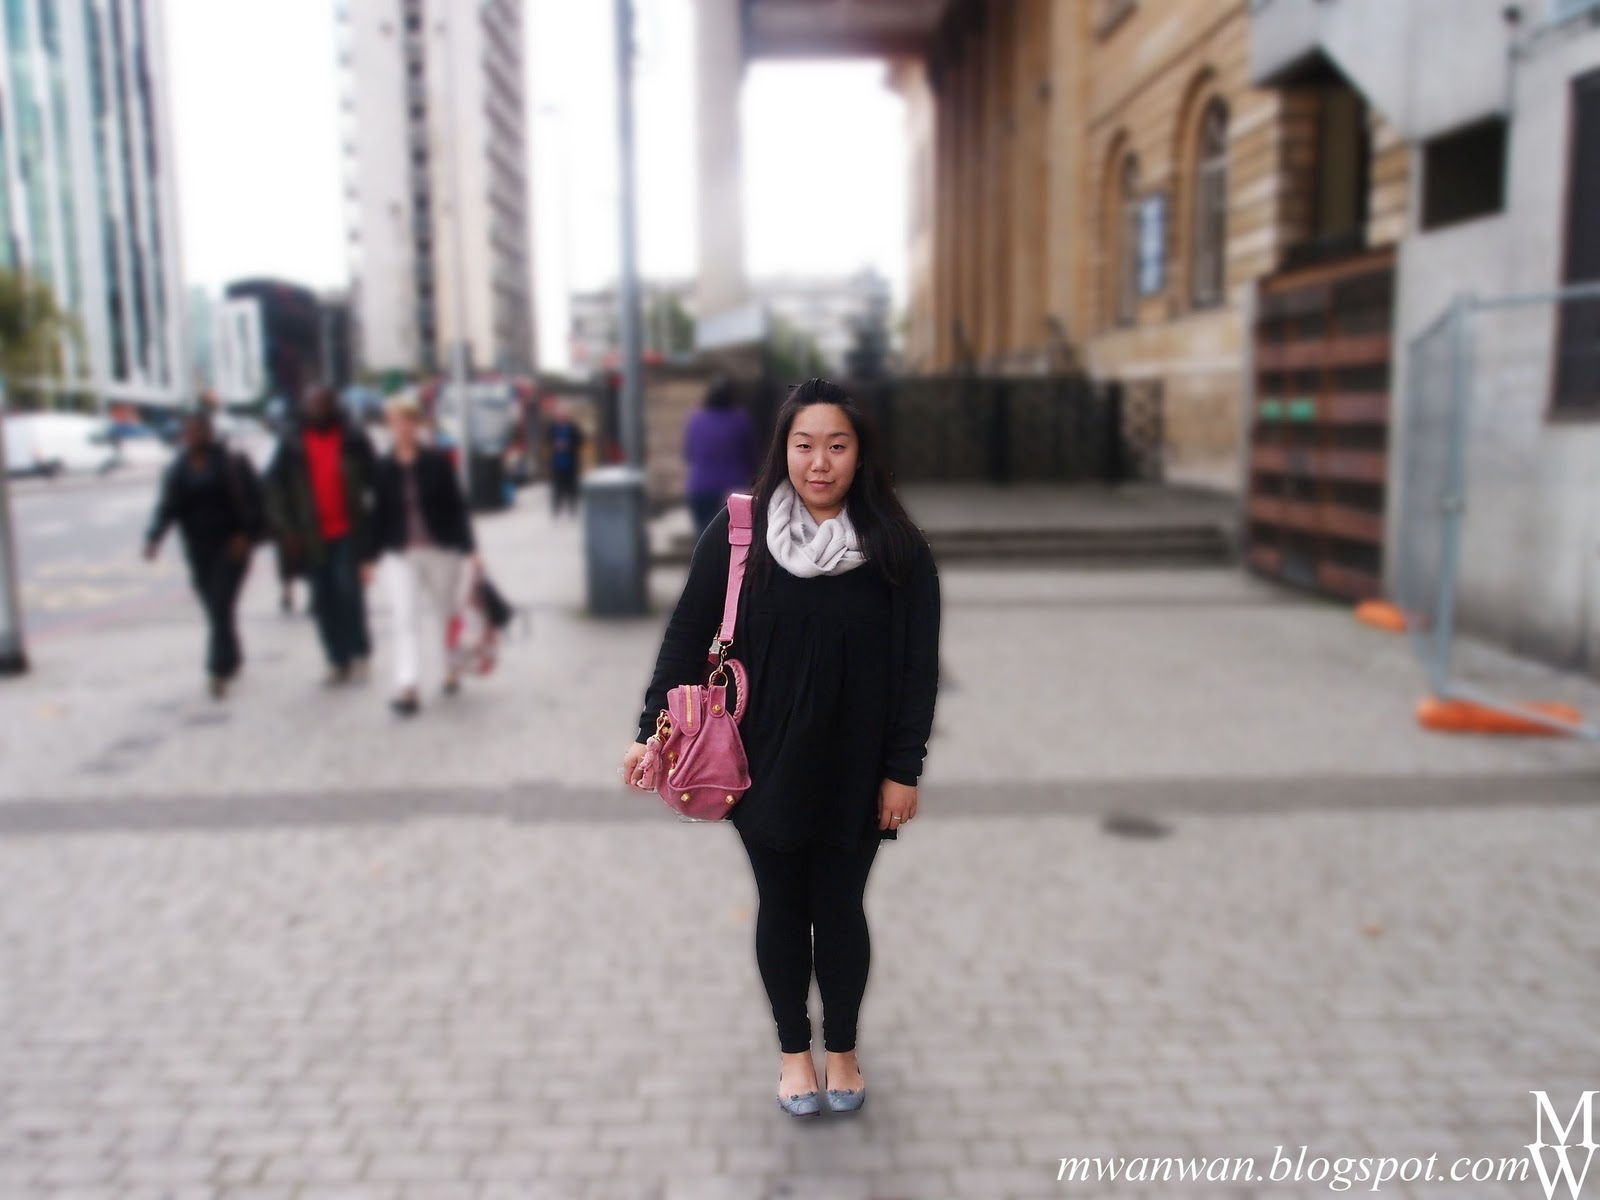 Welcome to Mwanwan blog by Michelle Wan: September 2011